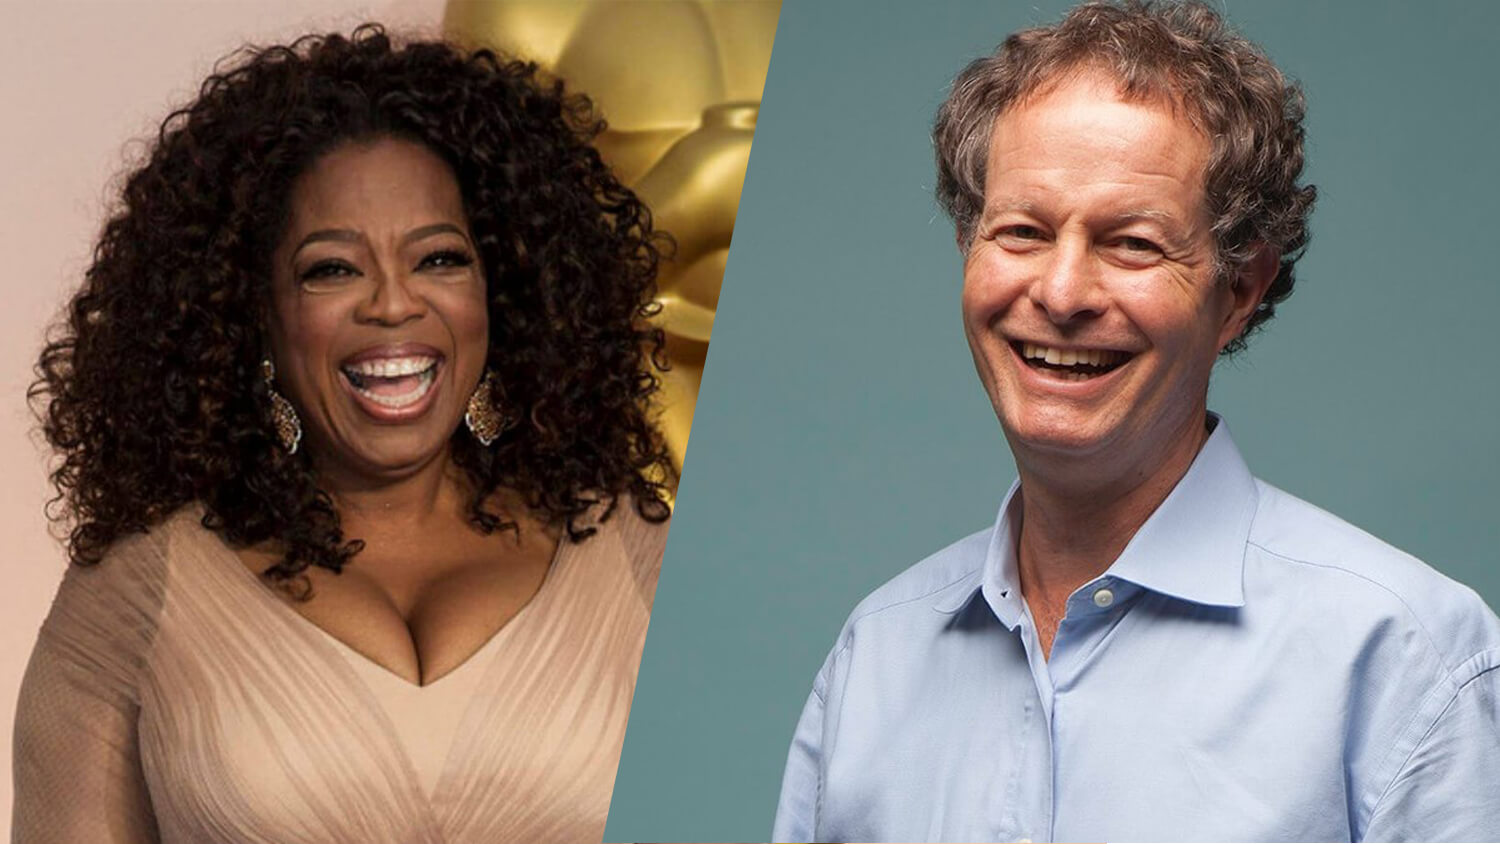 Oprah Winfrey Interviews Whole Foods Vegan Founder John Mackey About Conscious Capitalism